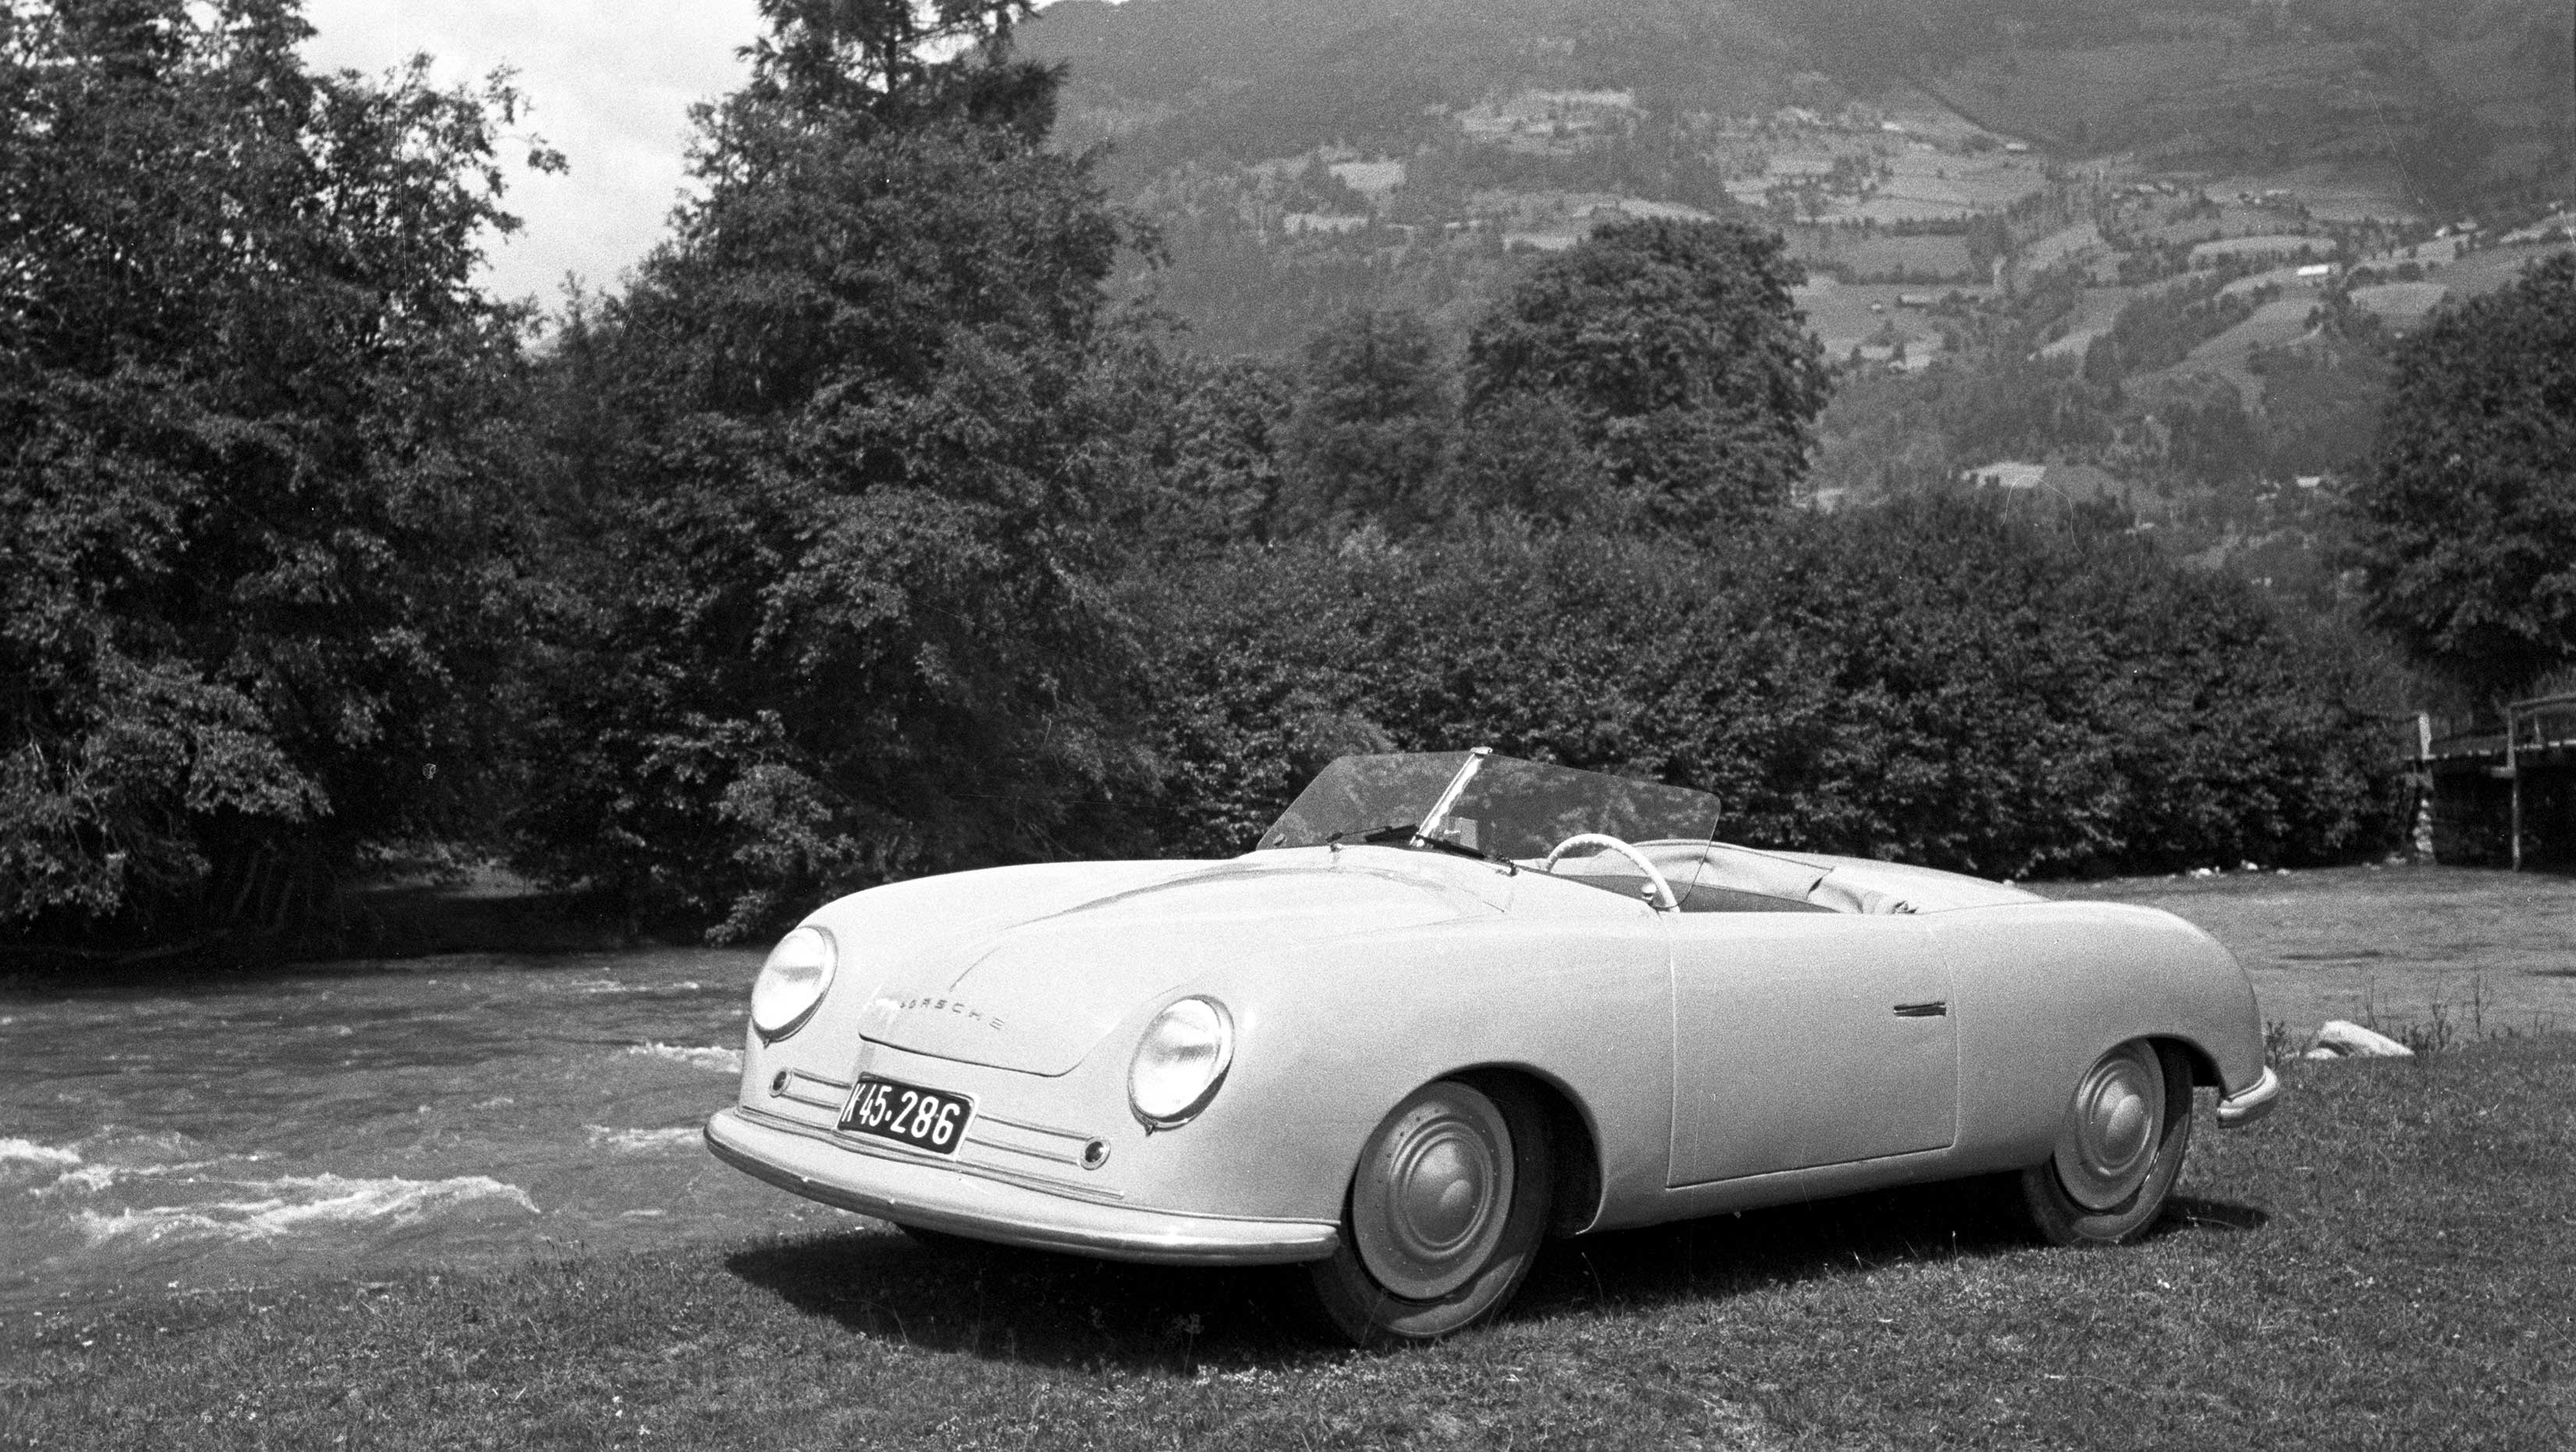 Heritage photo - Porsche Typ 356 Nr1  Roadster - 1948 - Gmund